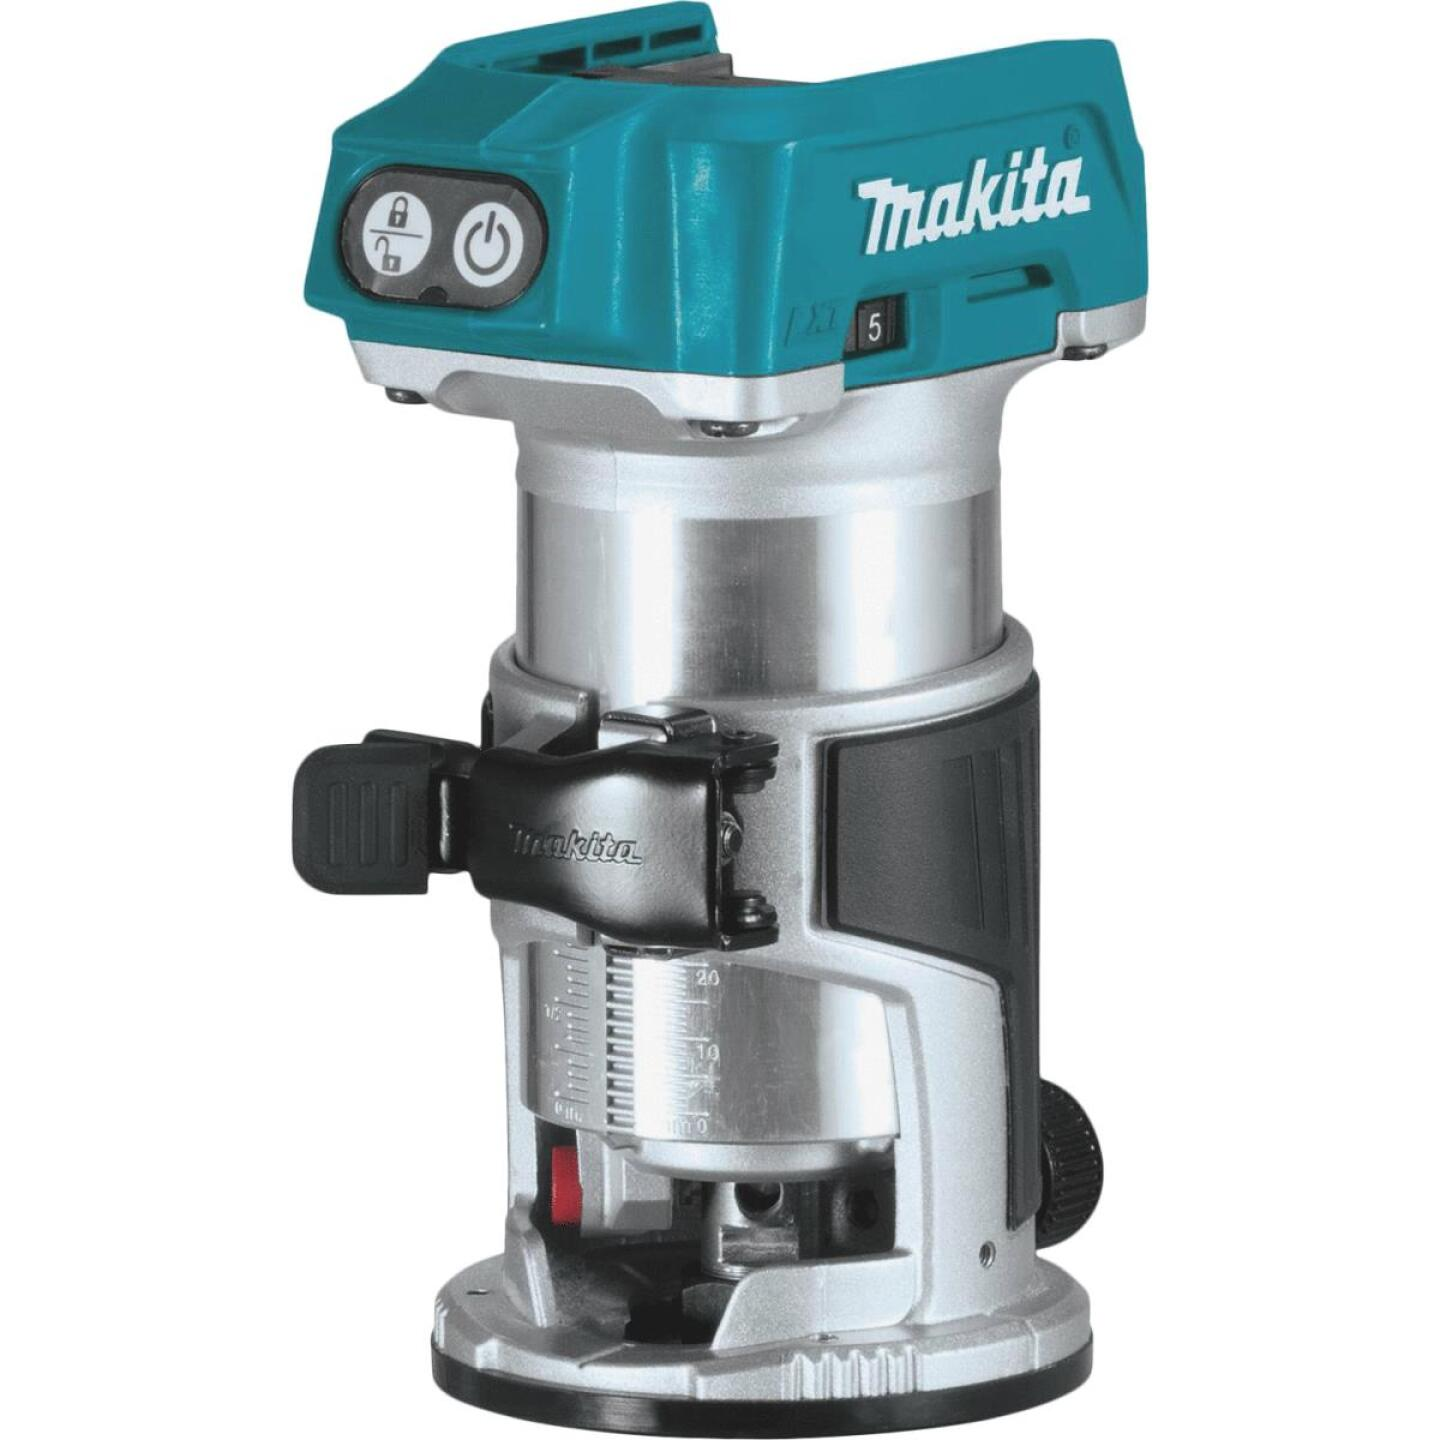 Makita 18 Volt LXT Lithium-Ion Brushless Compact Cordless Router (Bare Tool) Image 1